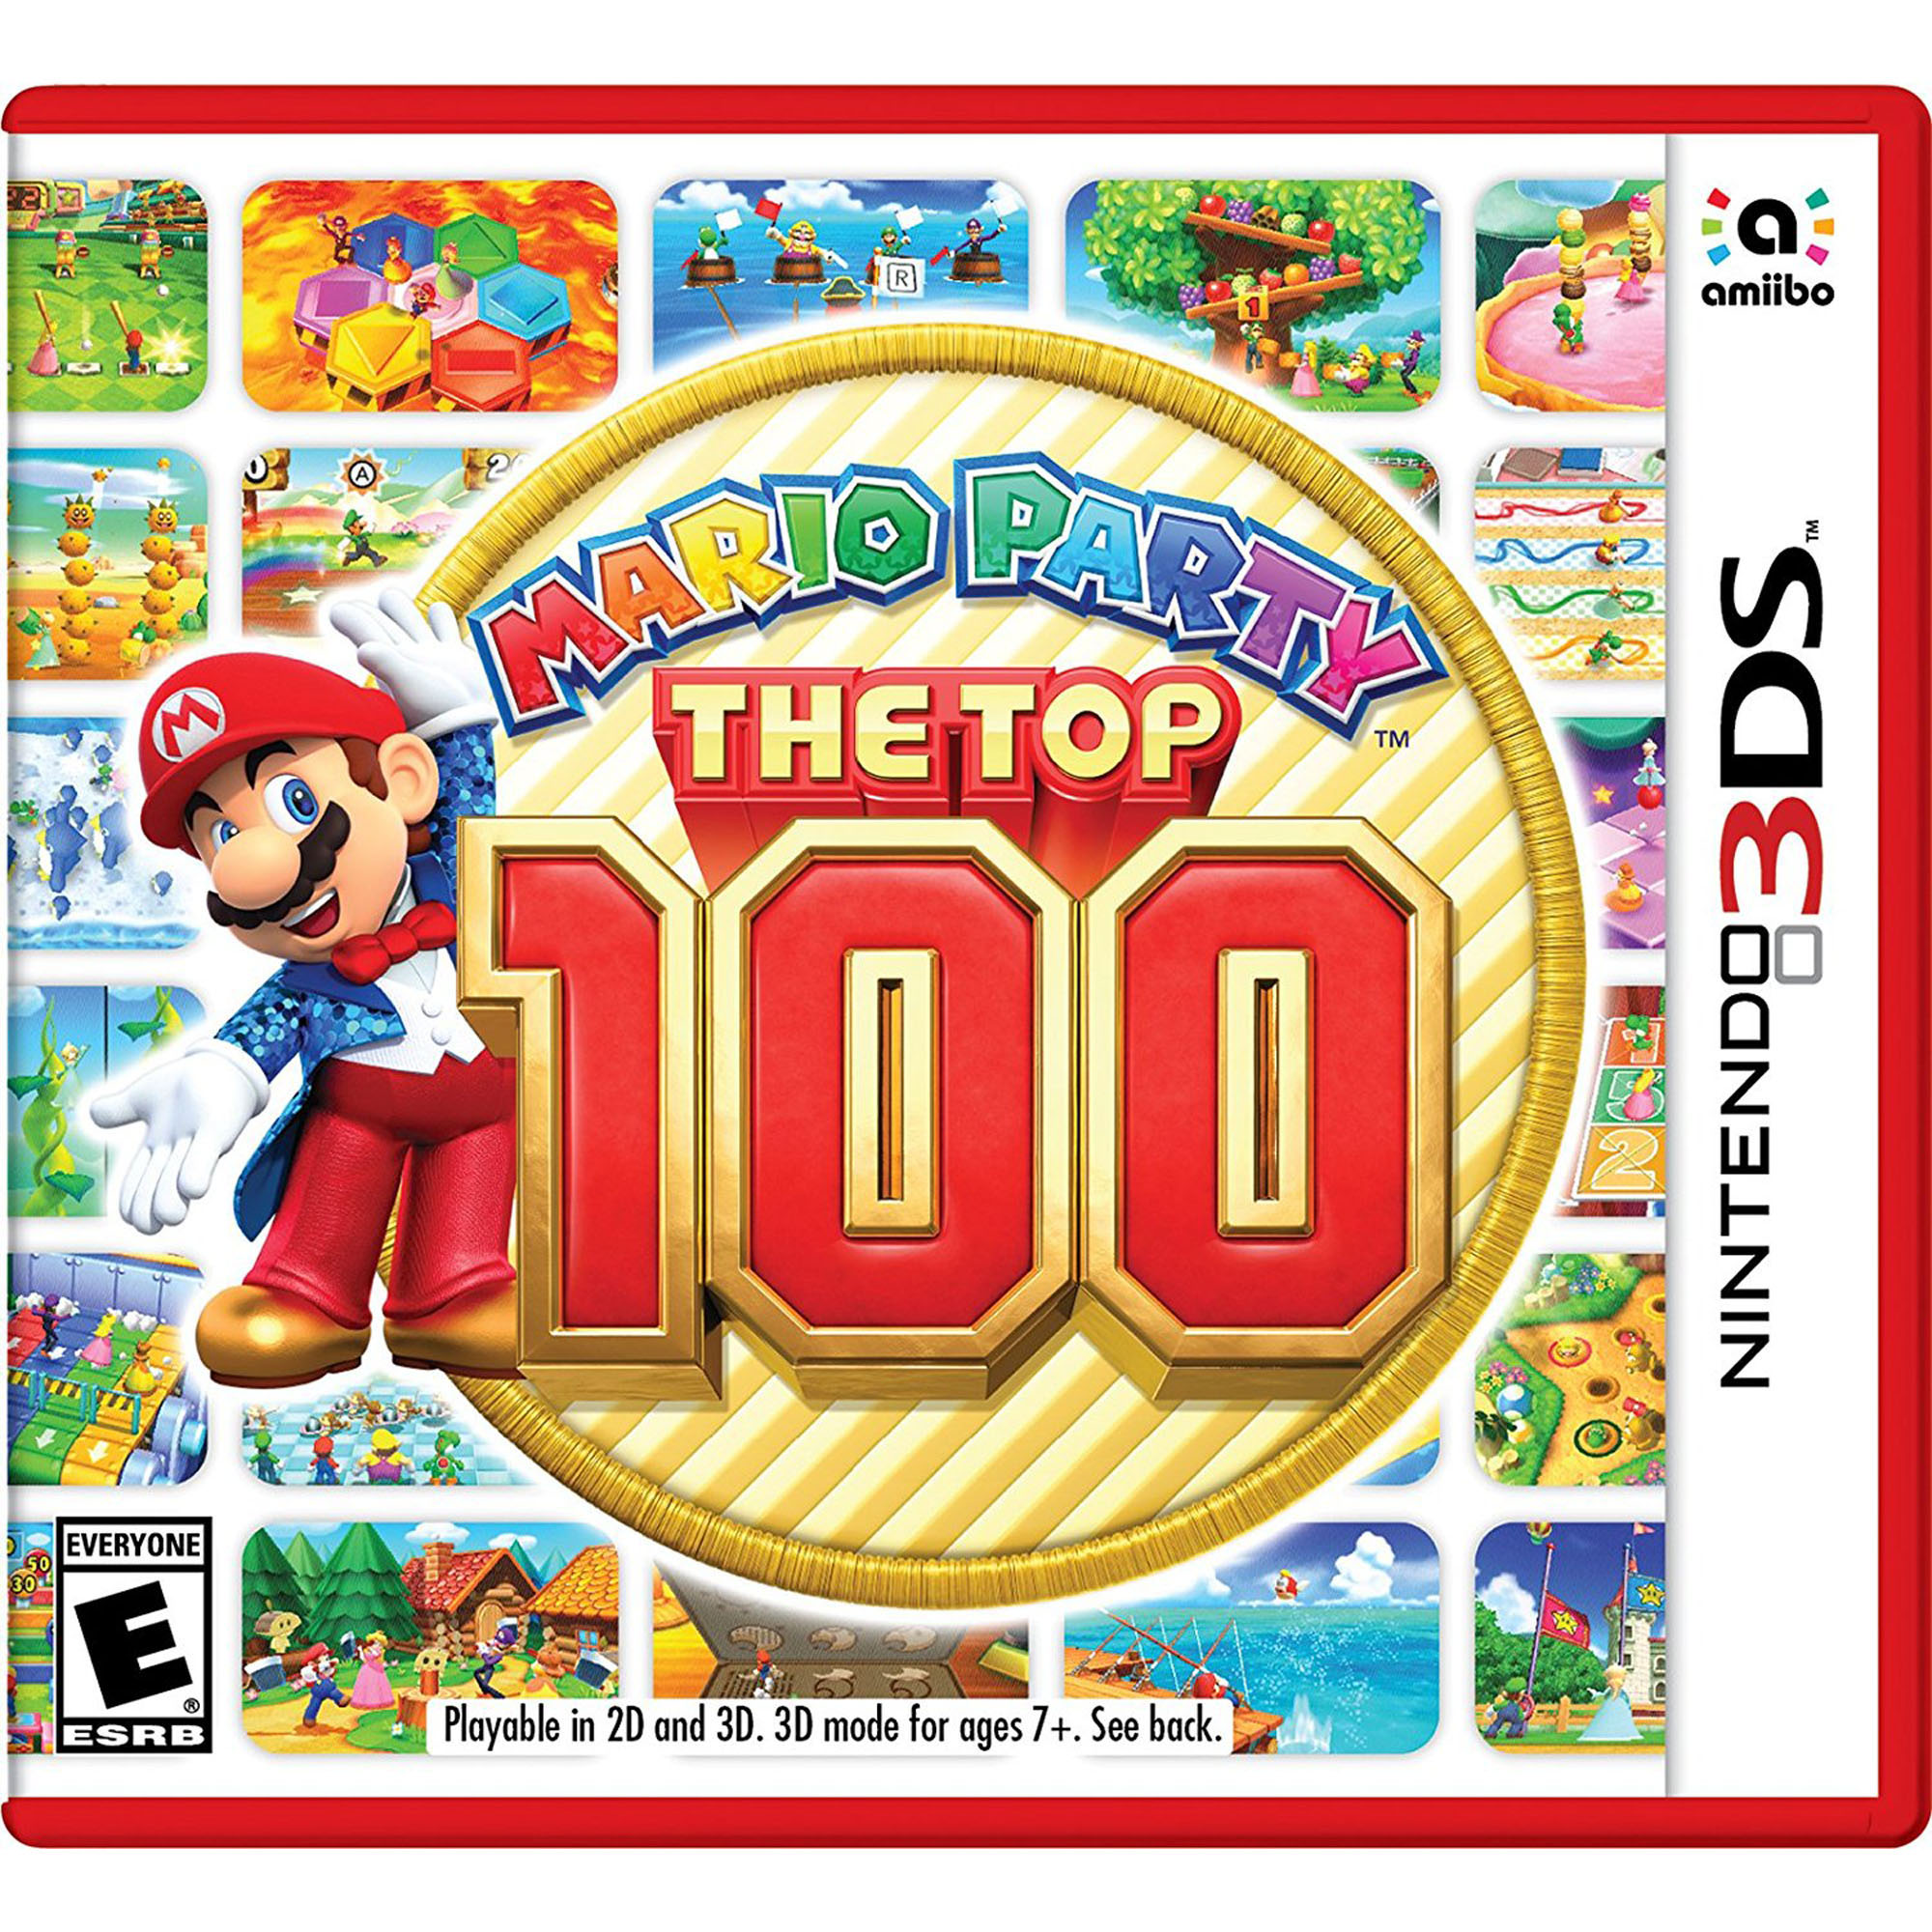 Mario Party The Top 100 3DS, Nintendo, Nintendo 3DS, [Digital Download], 045496744861